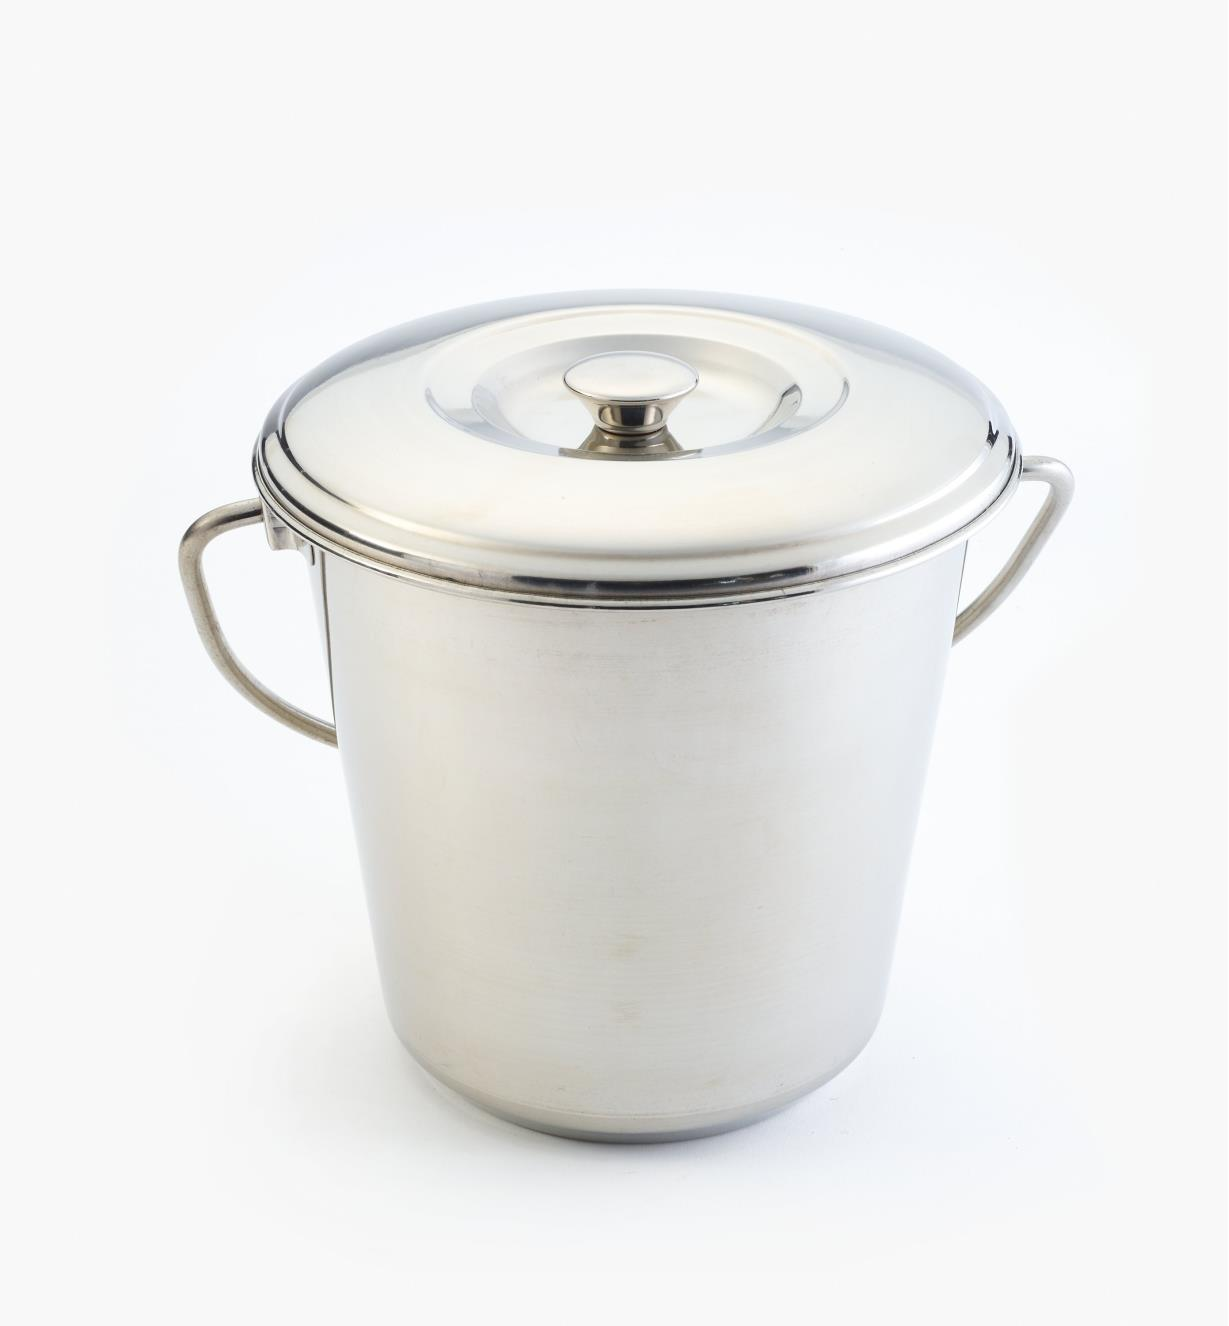 XG155 - Stainless Steel Compost Pail, 4 litres